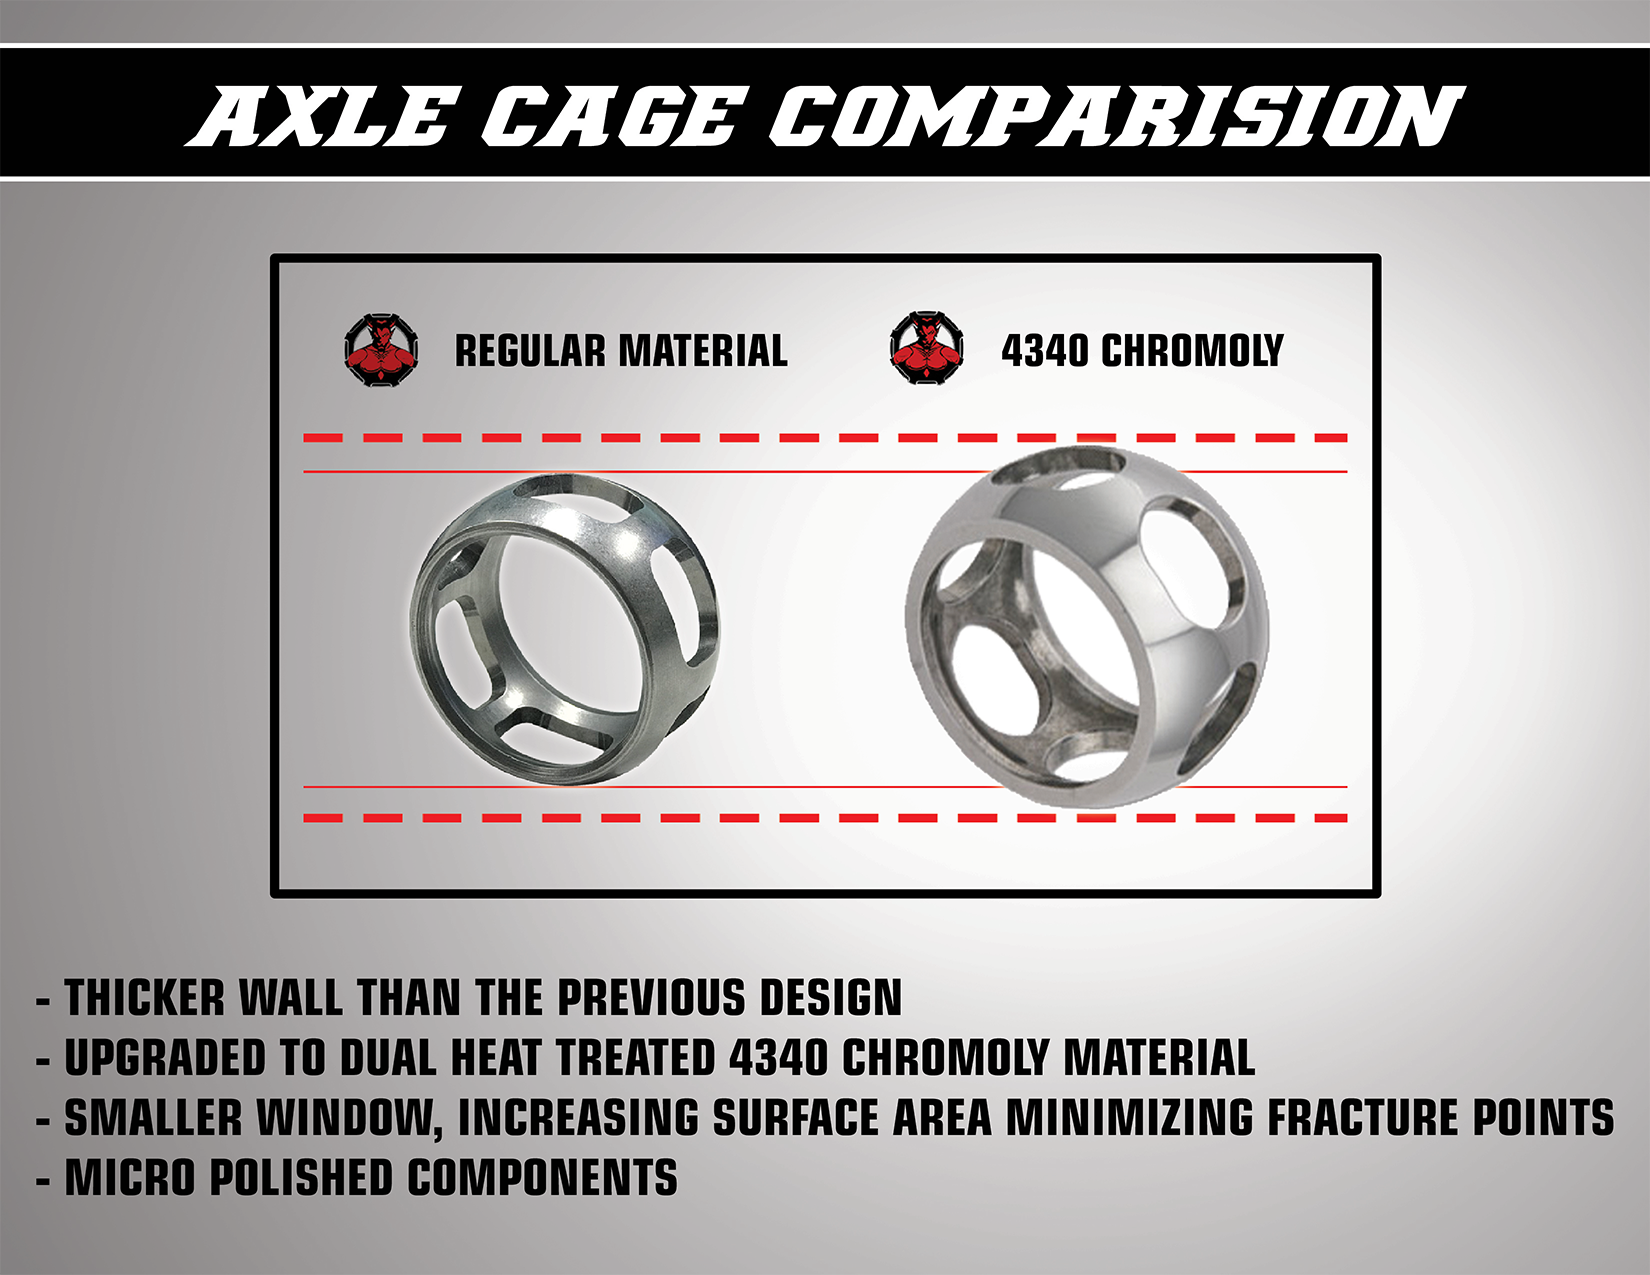 Demon X-Treme Heavy Duty ATV UTV Axles and Long Travel Cage Comparision - Demon Powersports - Polaris, Can Am, Yamaha